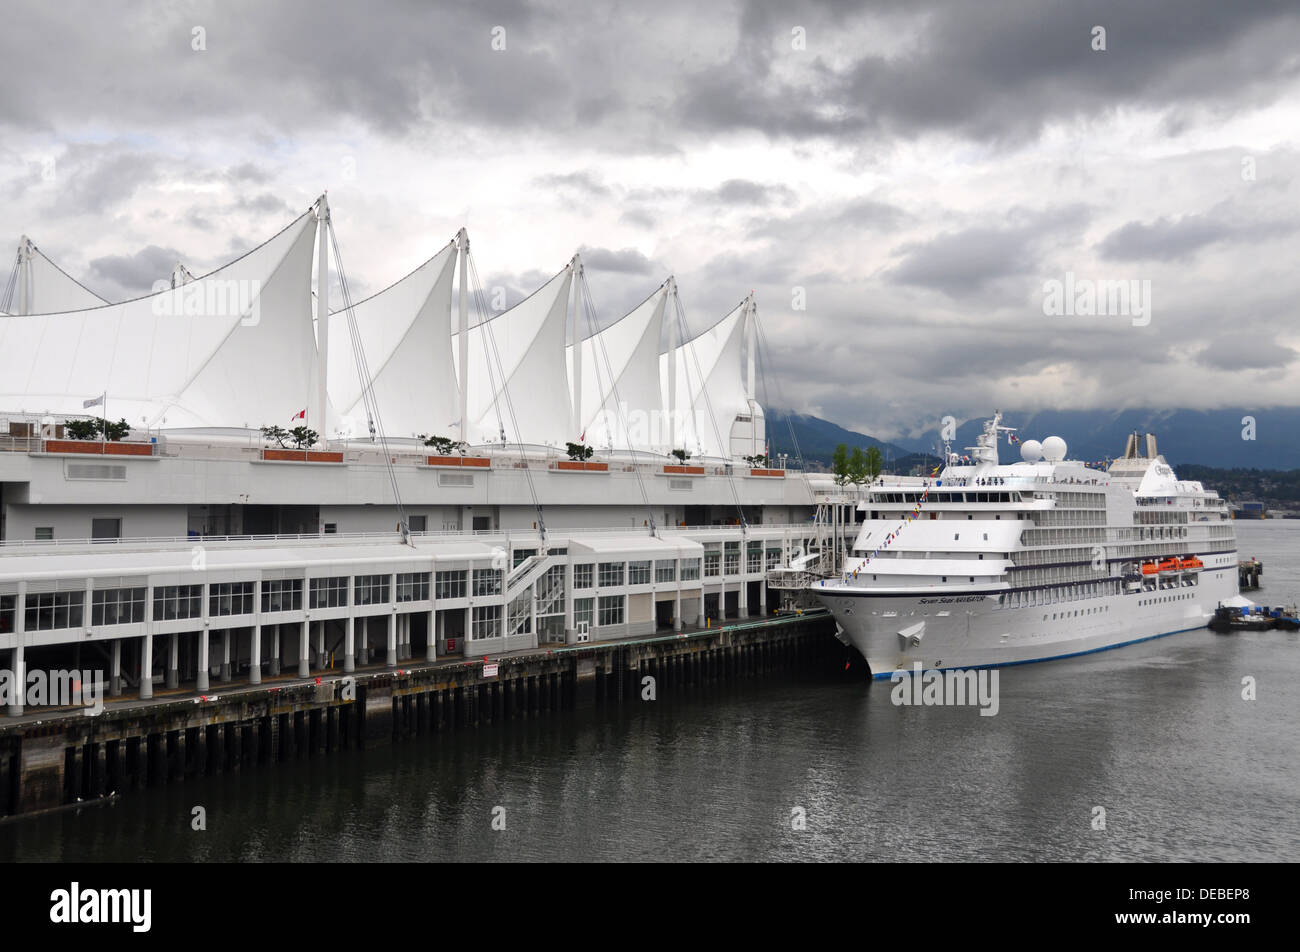 Cruise ship at Canada Place, Vancouver, British Columbia, Canada - Stock Image